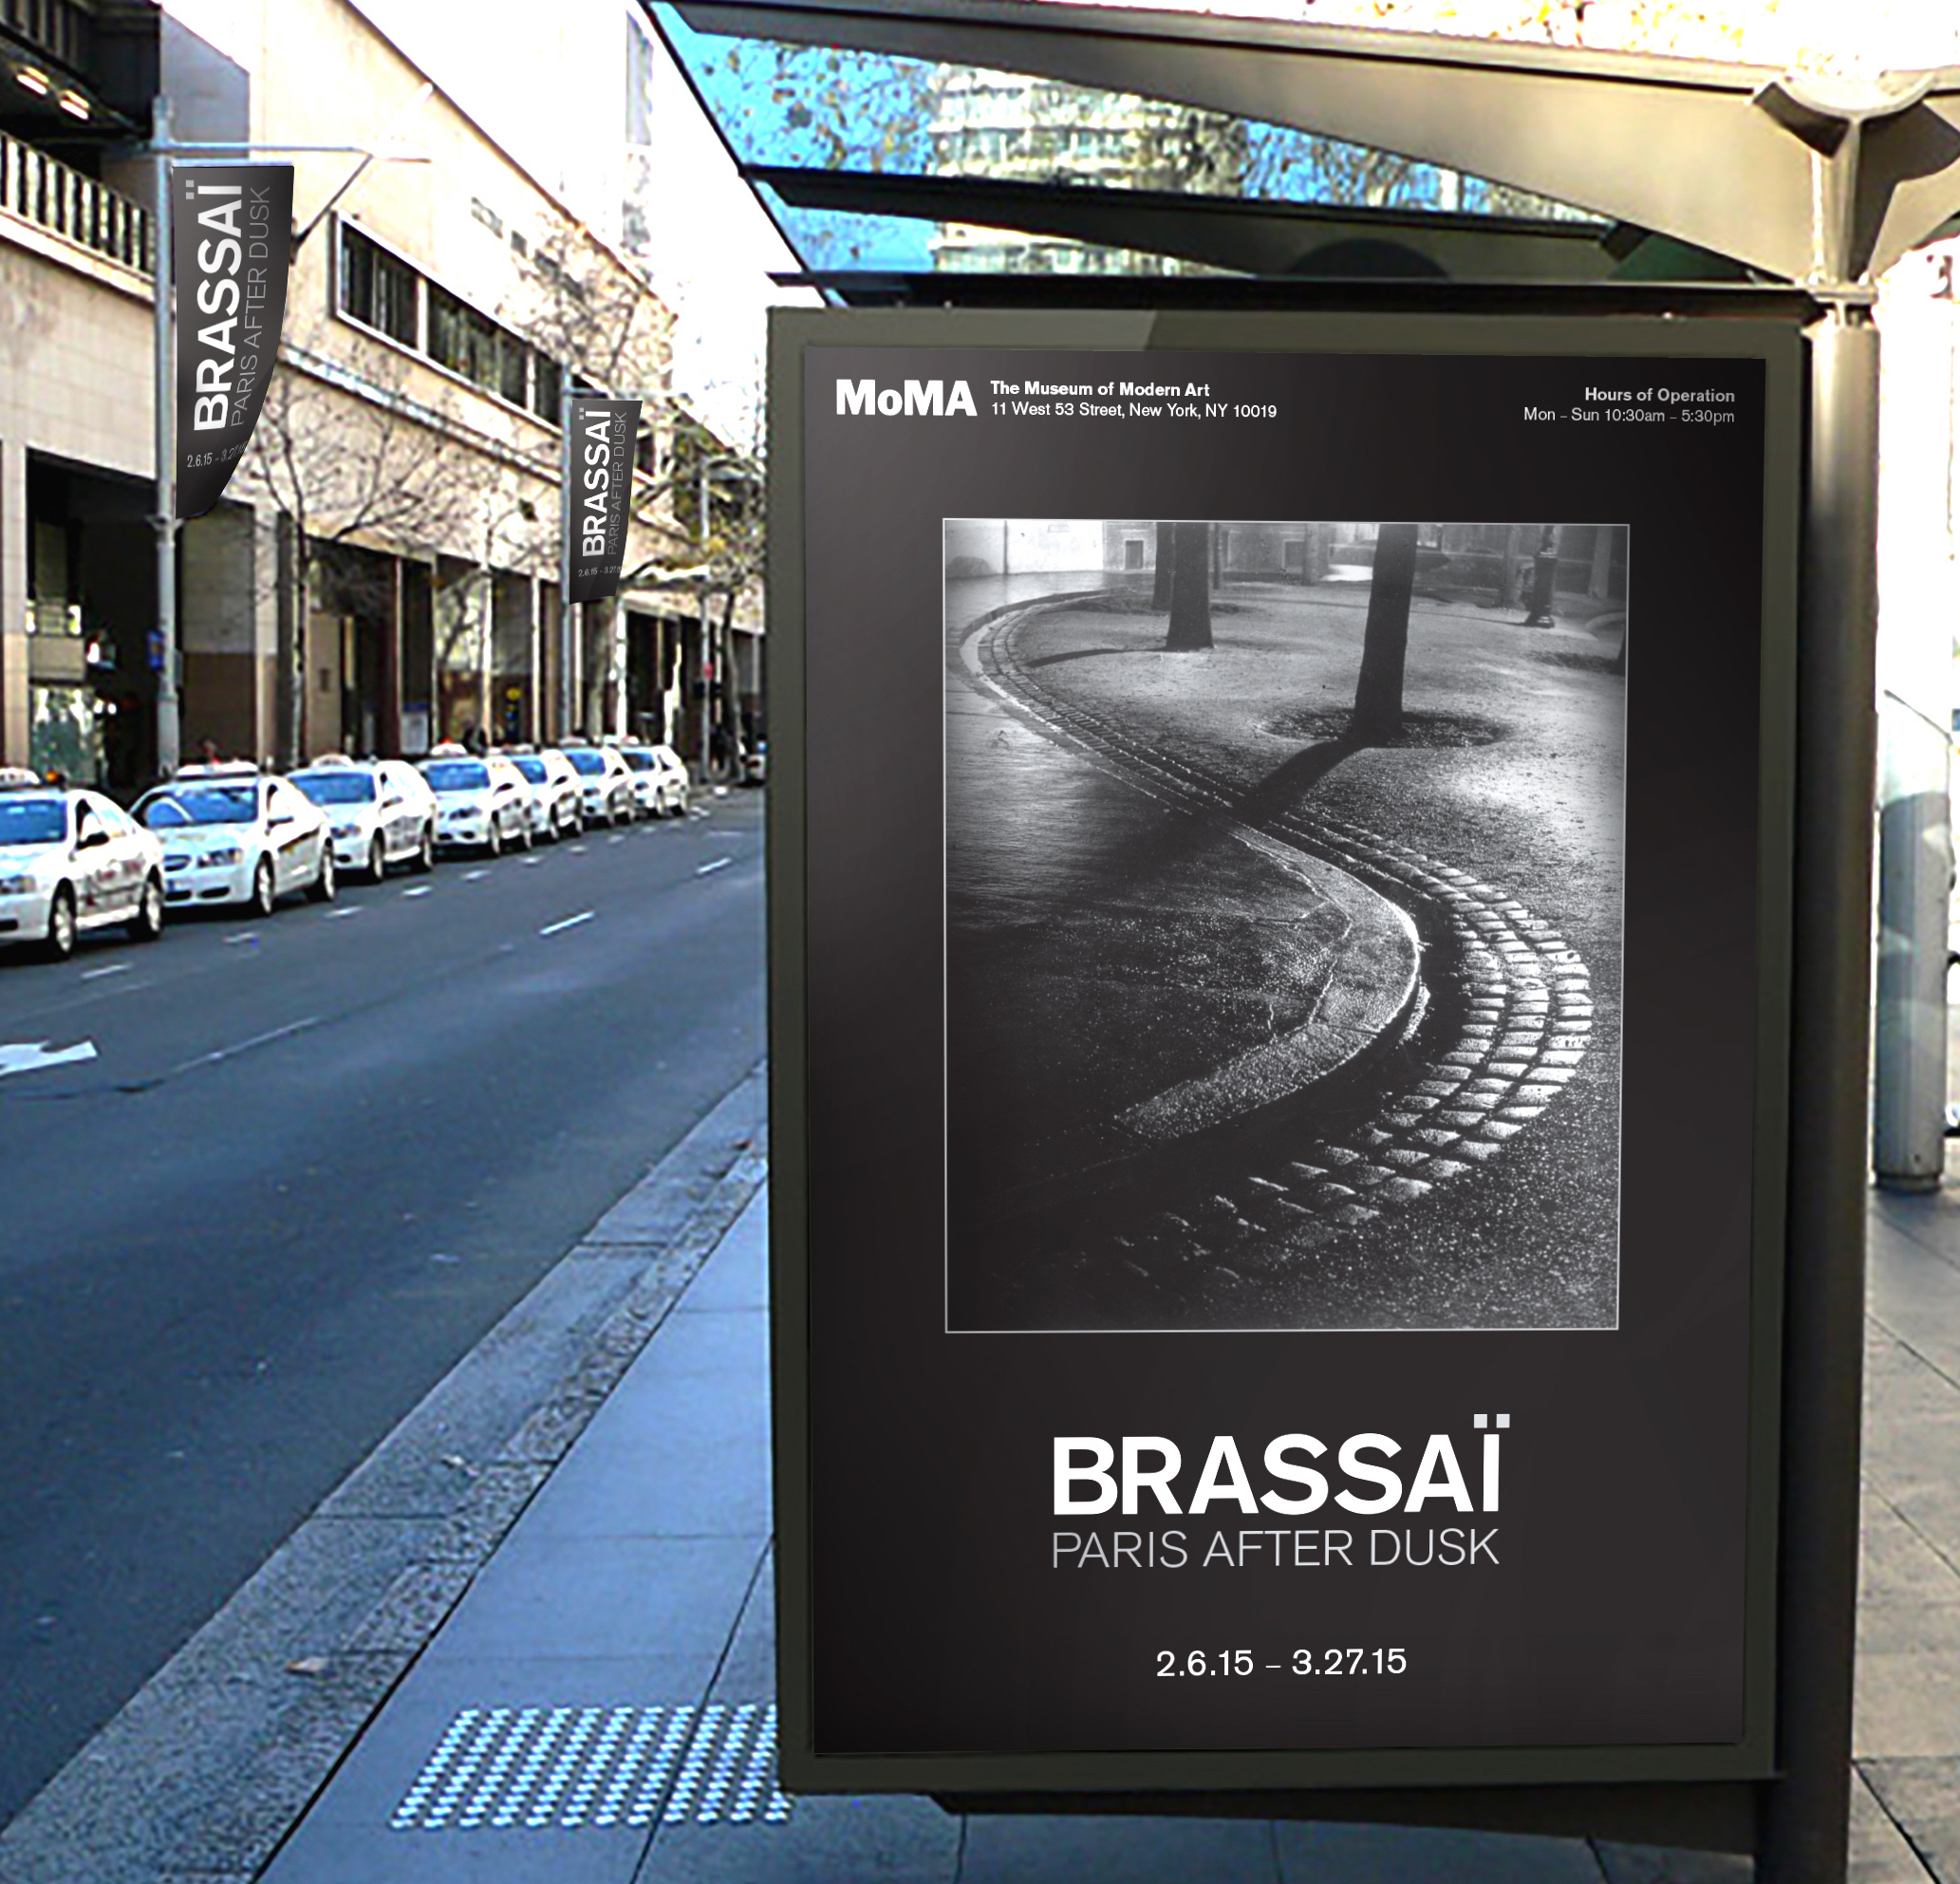 brassai outdoor with banners copy.jpg